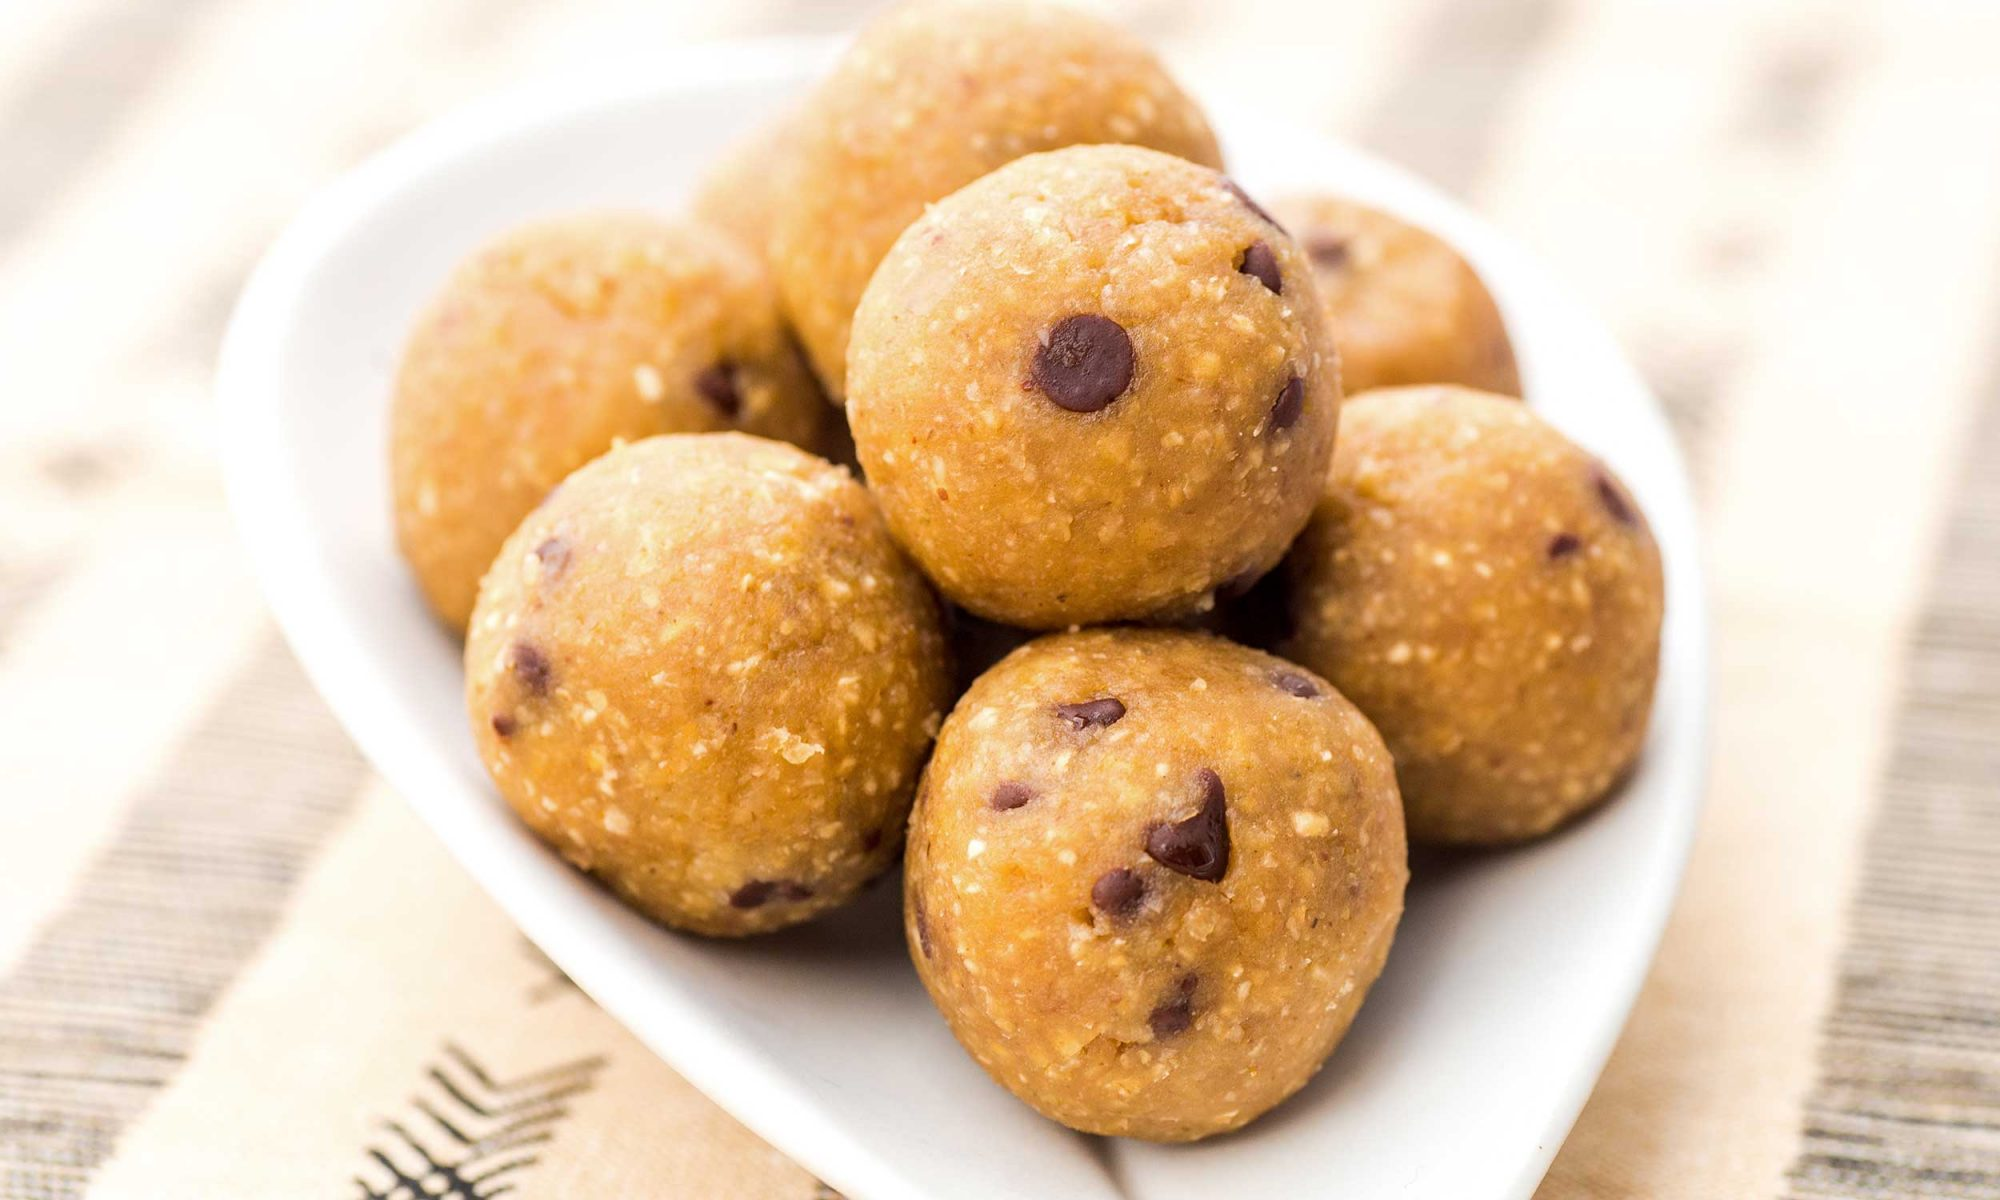 Peanut Butter Chickpea Energy Balls on White Plate